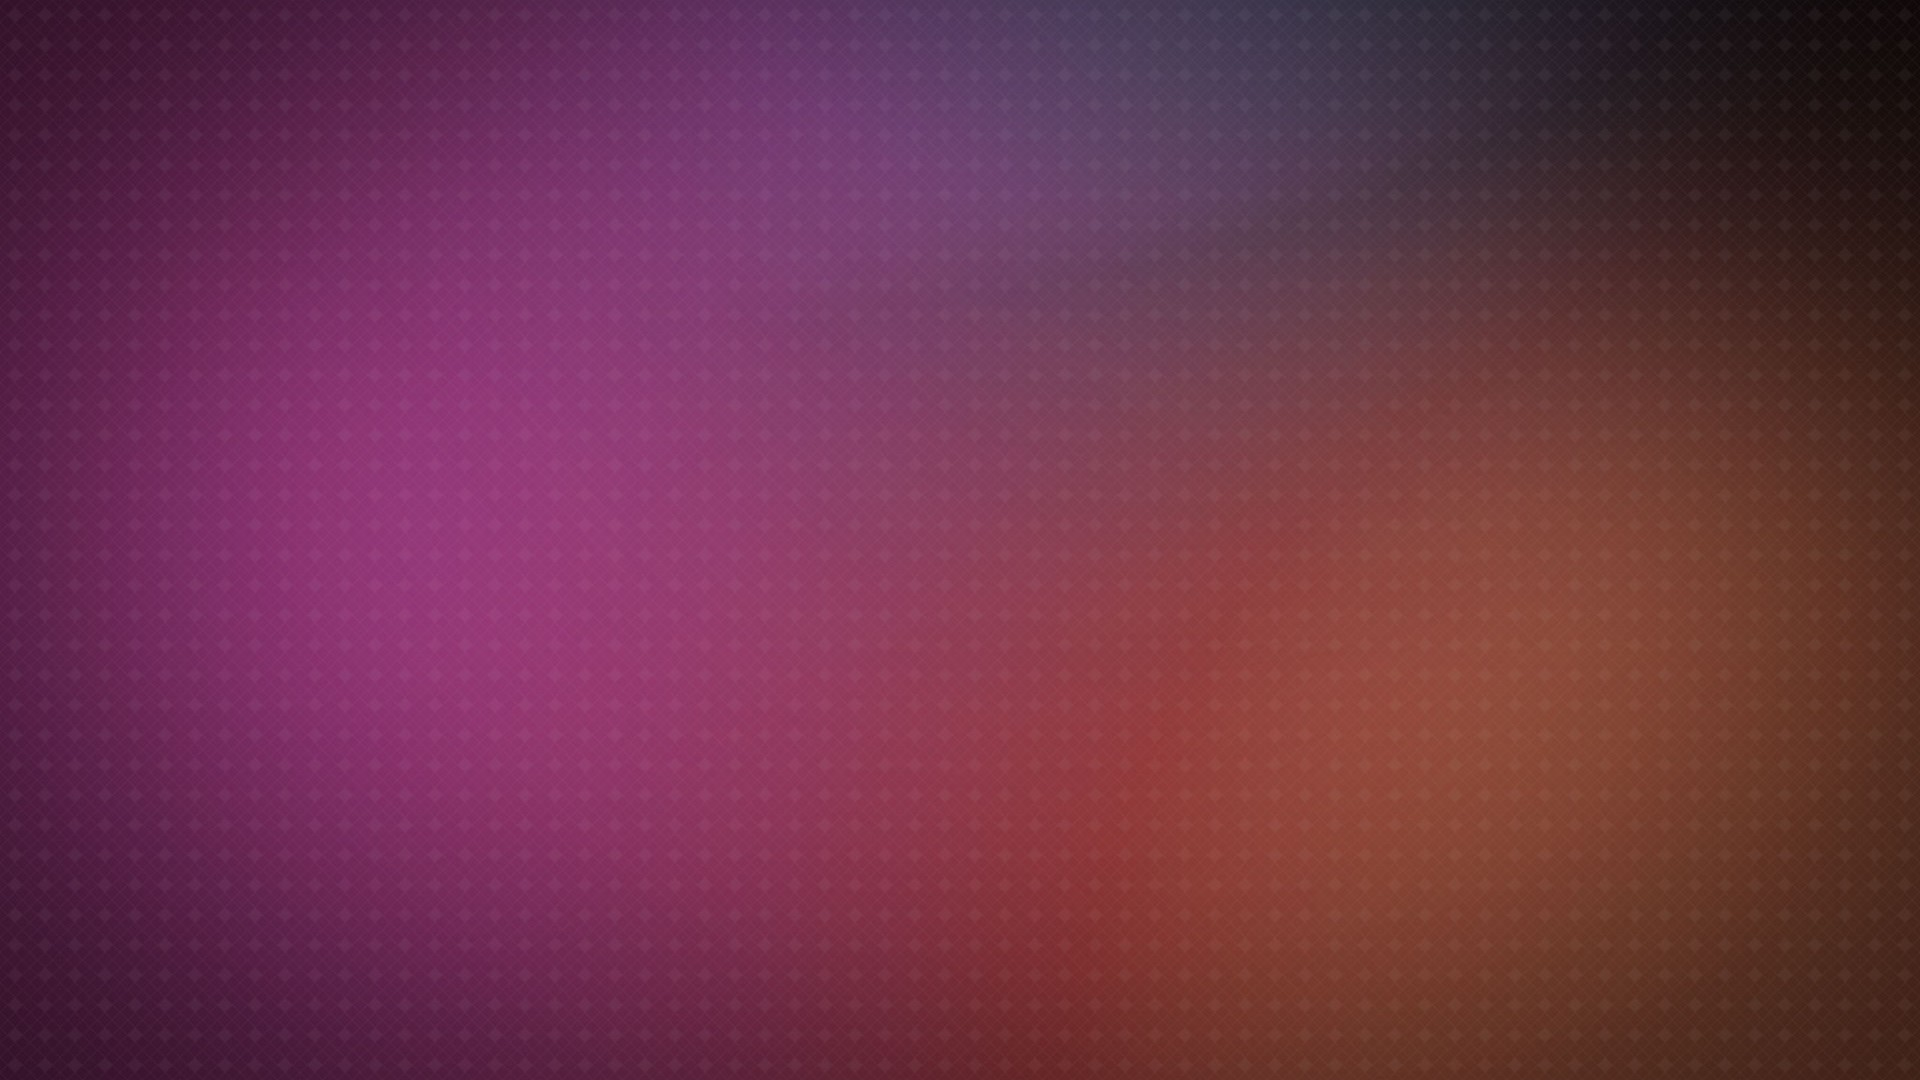 Preview wallpaper purple, red, black, form 1920×1080